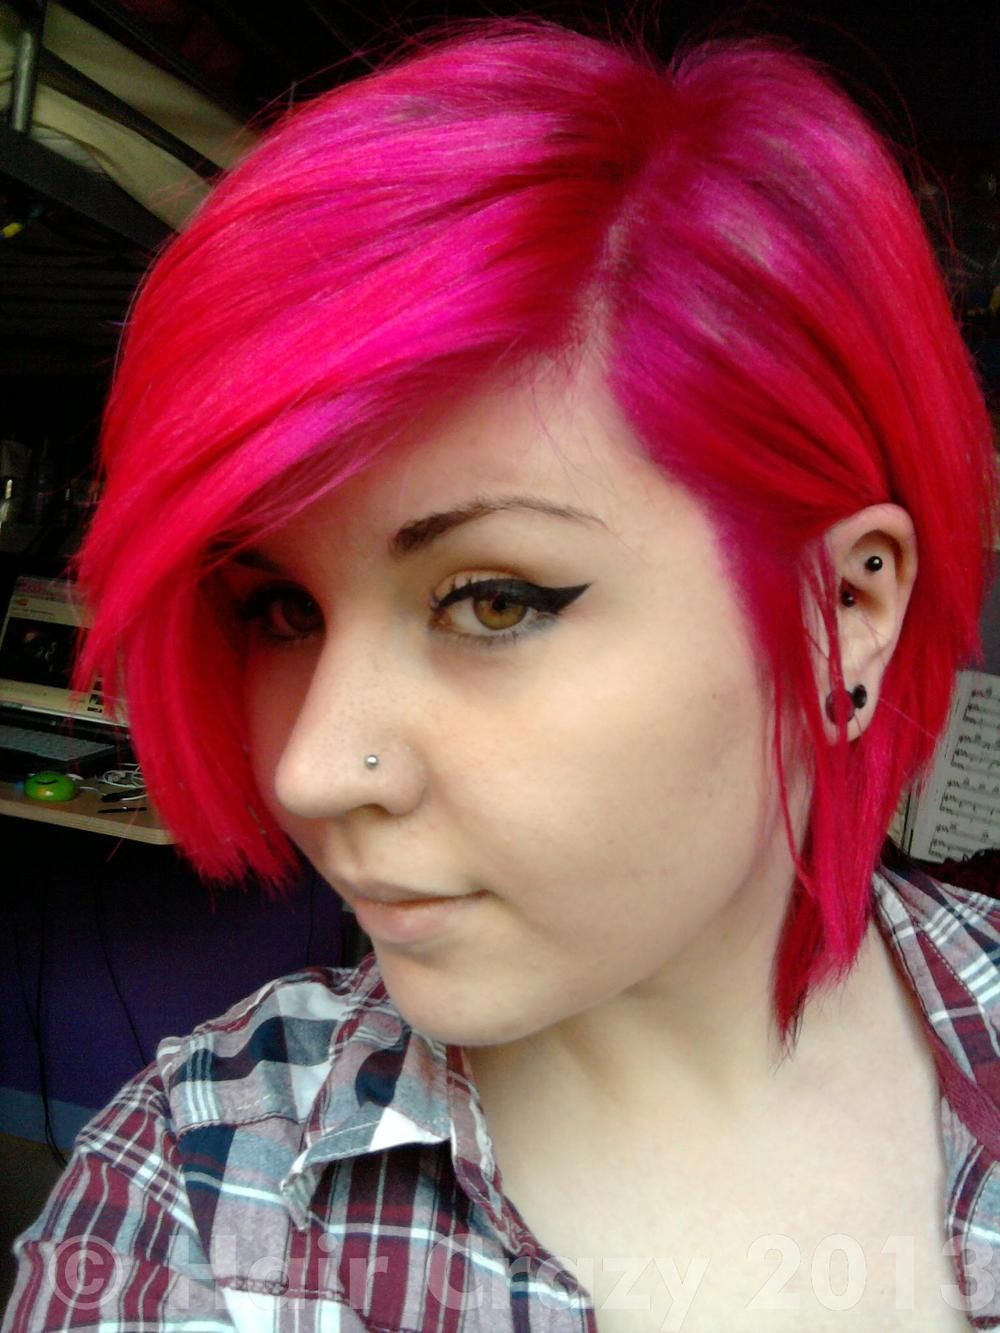 Atomic pink is a long lasting semipermanent hair dye from special